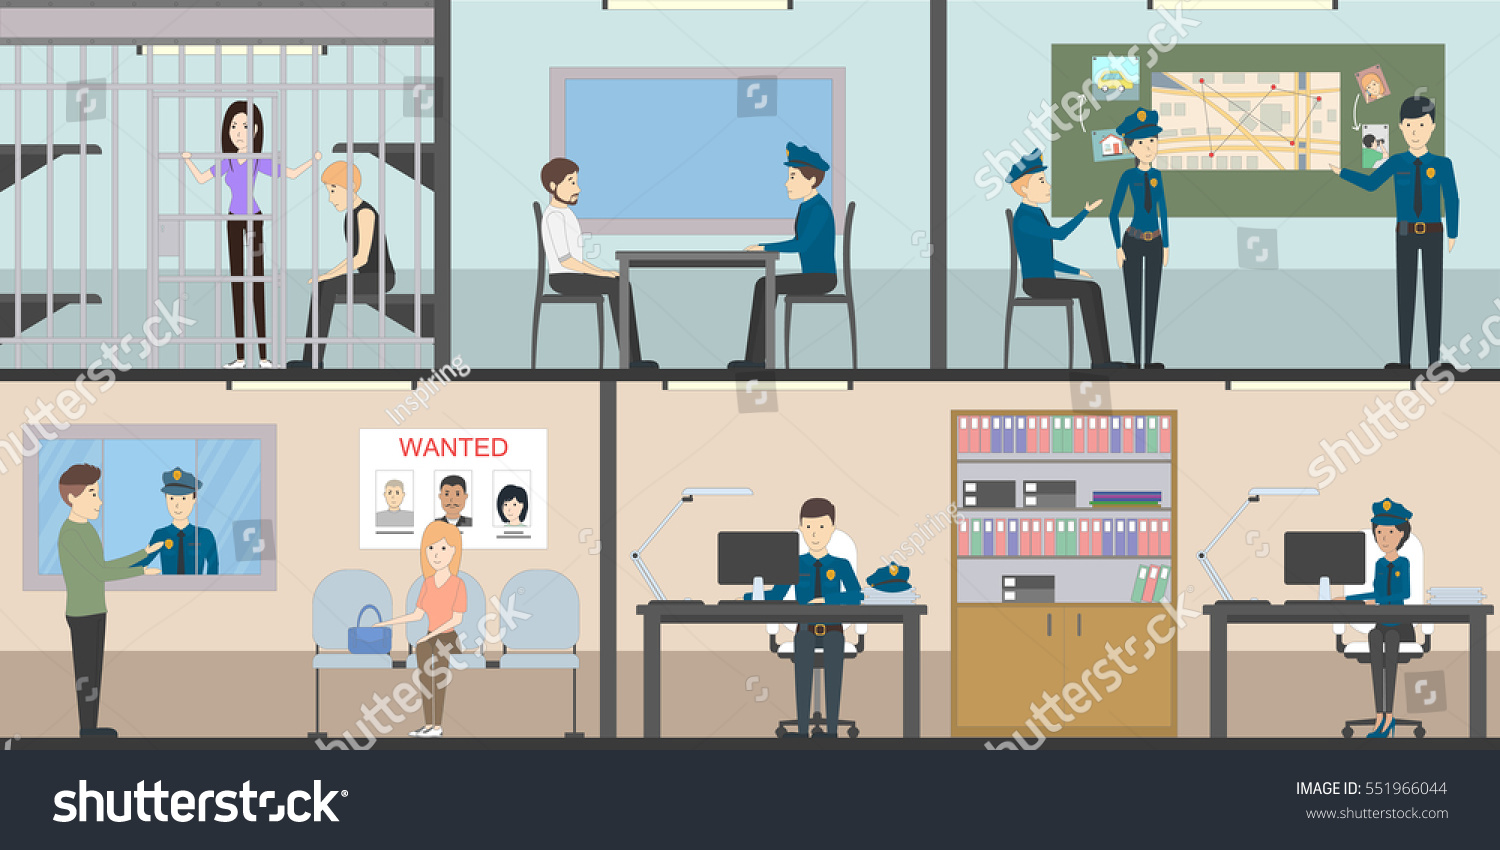 Police Station Interior Set Rooms Office Stock Vector HD (Royalty ...